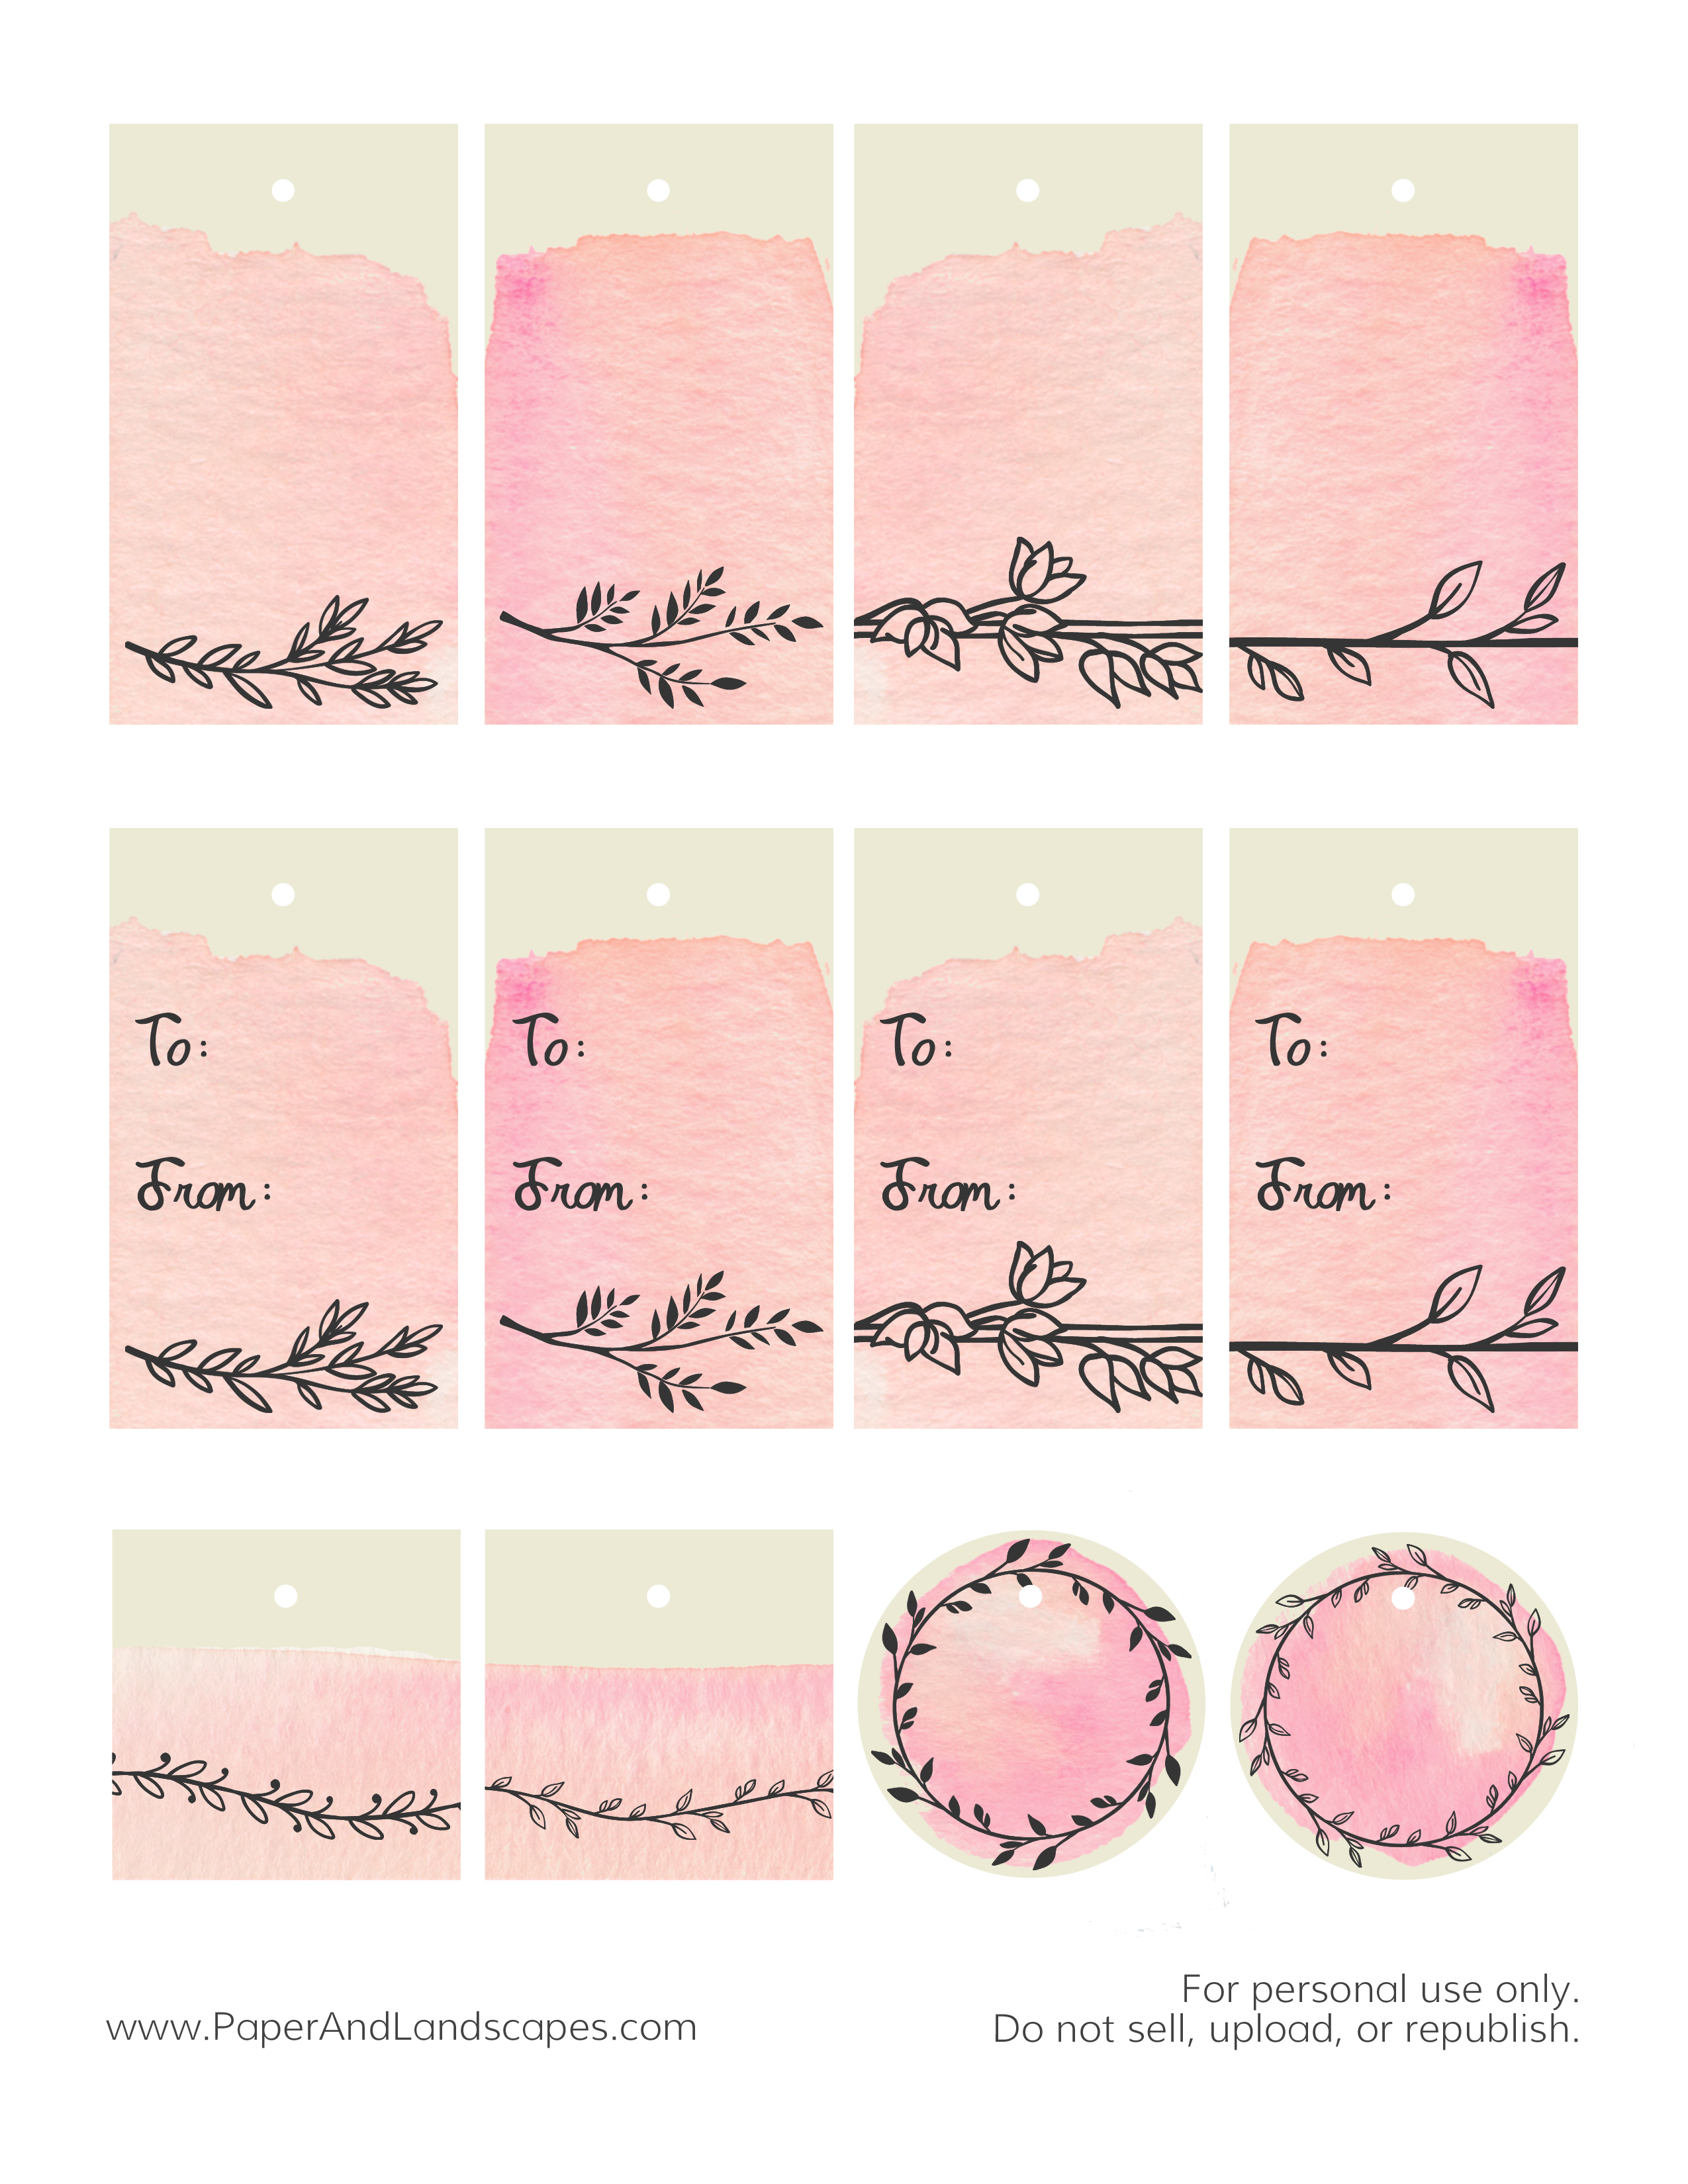 photograph regarding Printable Watercolor Paper named Free of charge Printables: Watercolor Reward Tags - Paper and Surroundings